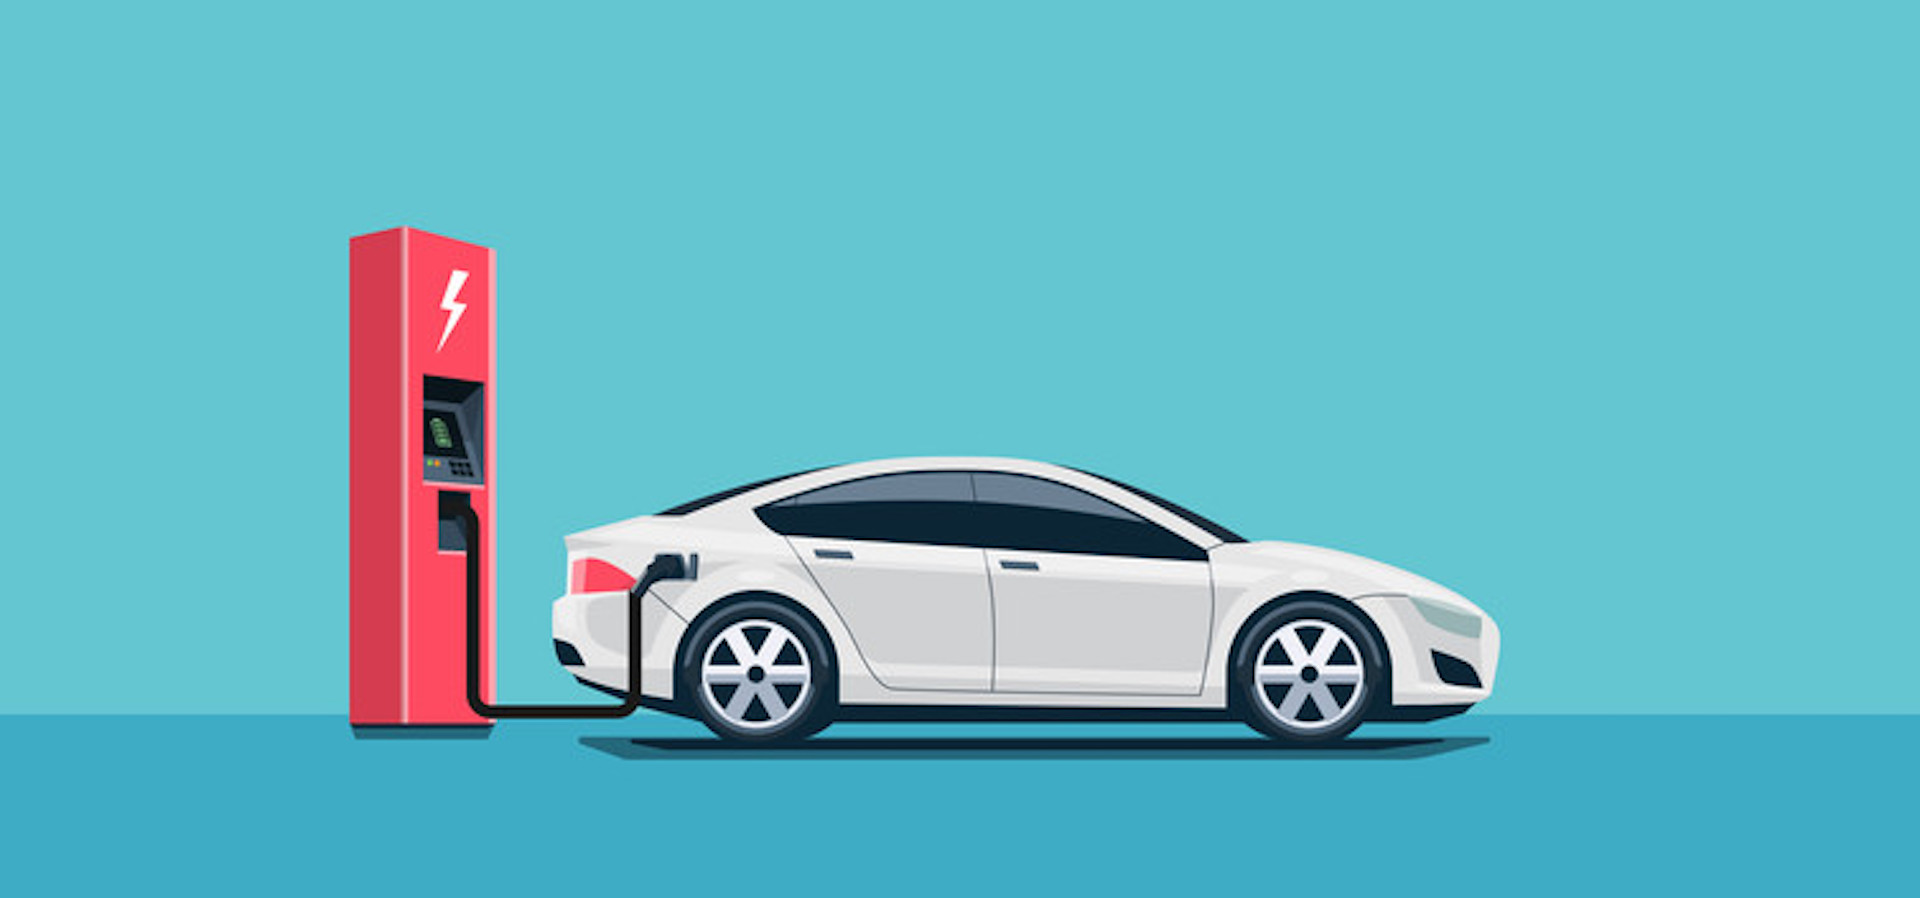 a cartoon of an electric car plugged into a red charging outlet